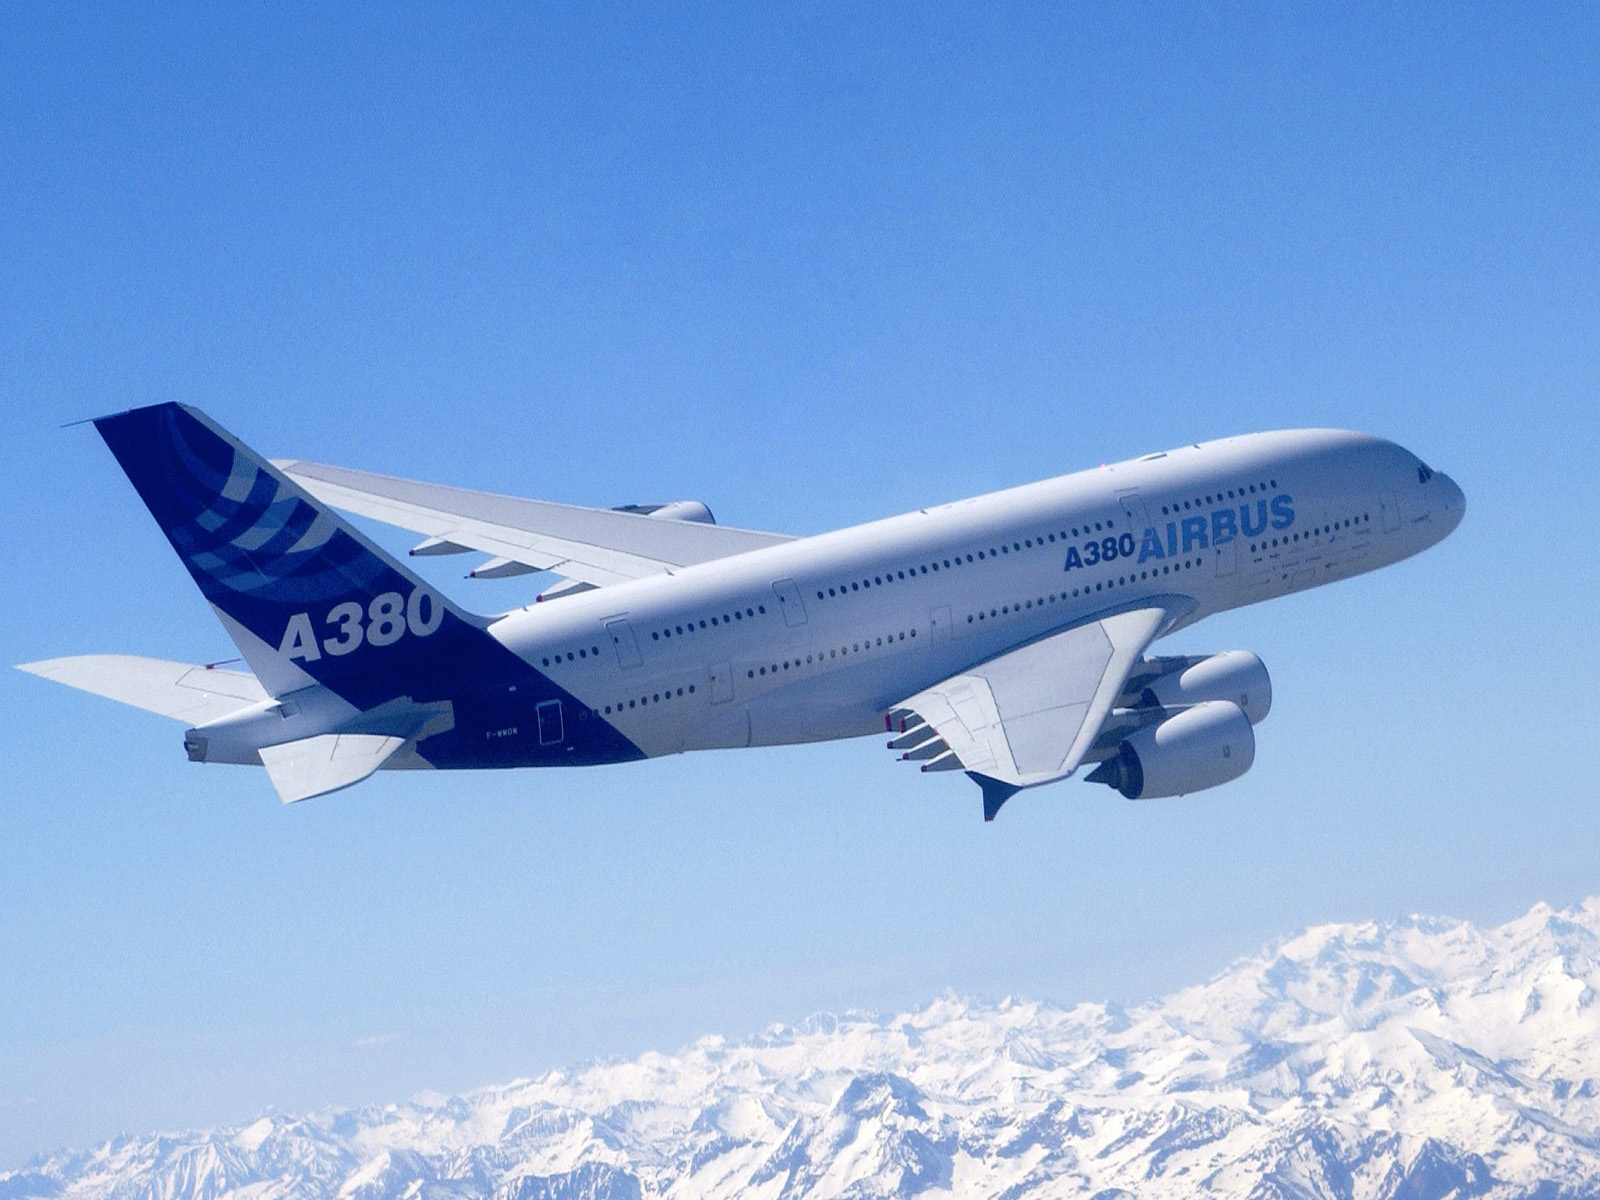 airbus a380 | free desktop wallpapers for widescreen, hd and mobile